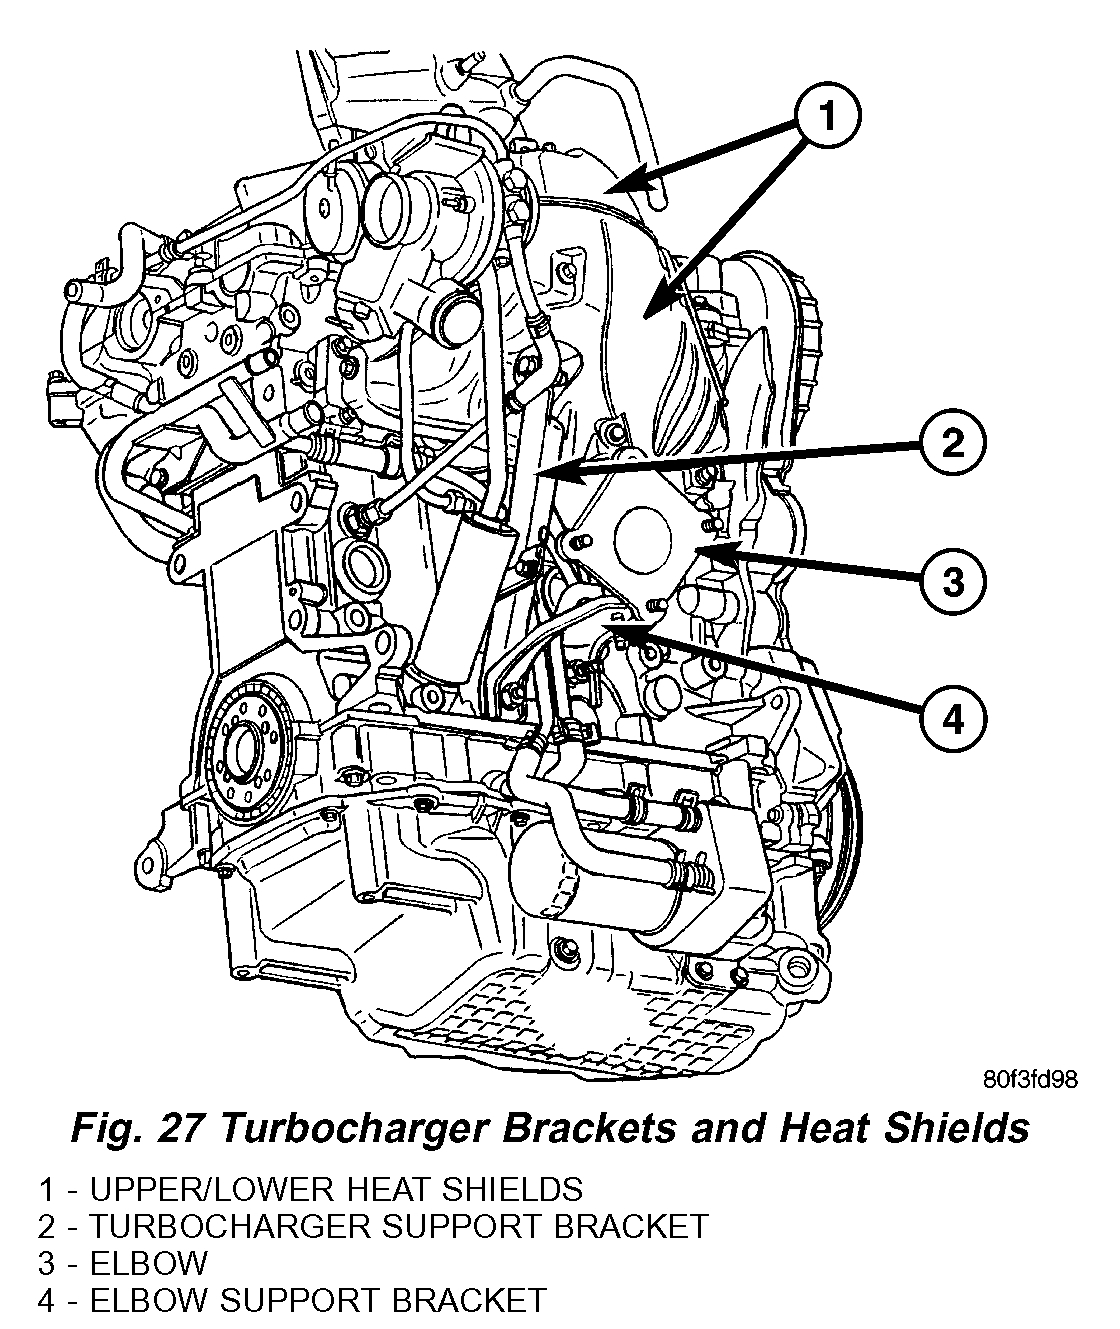 Chrysler Pt Cruiser Engine Diagram